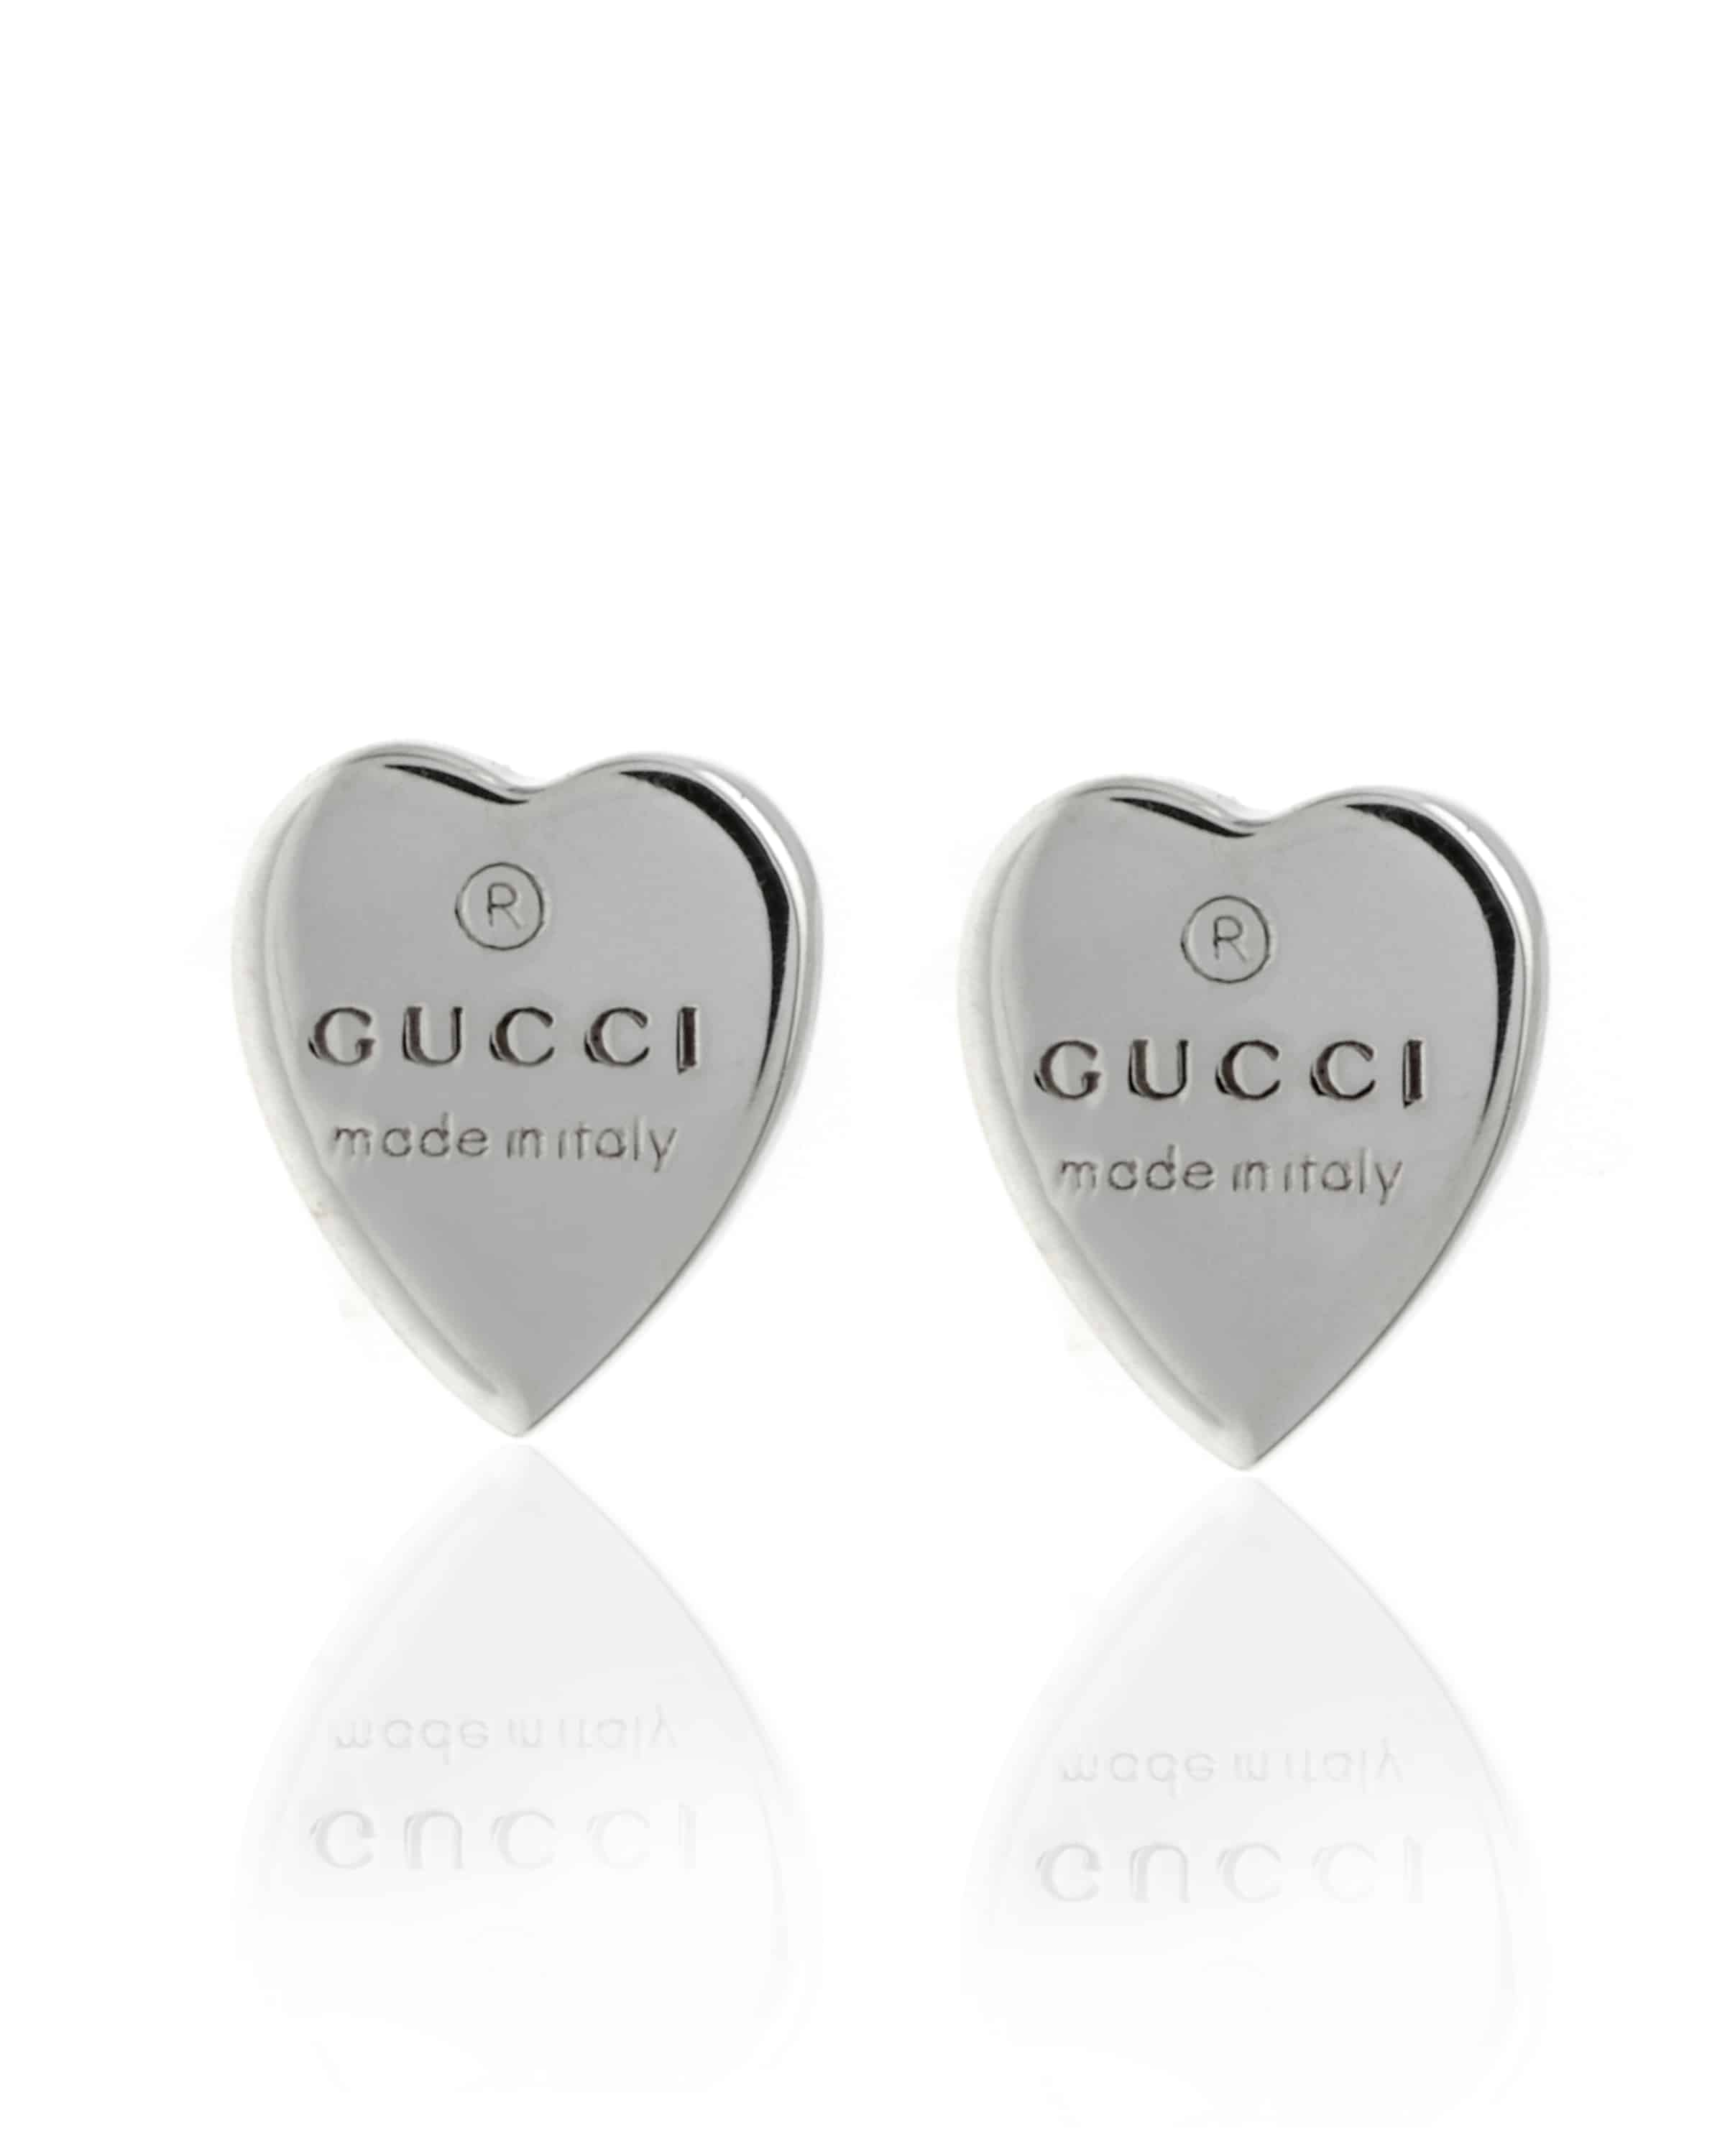 907ee9edabe ... Gucci Heart Sterling Silver Stud Earrings YBD22399000100U. Sale!  YBD22399000100U a  YBD22399000100U c  YBD22399000100U b. YBD22399000100U a